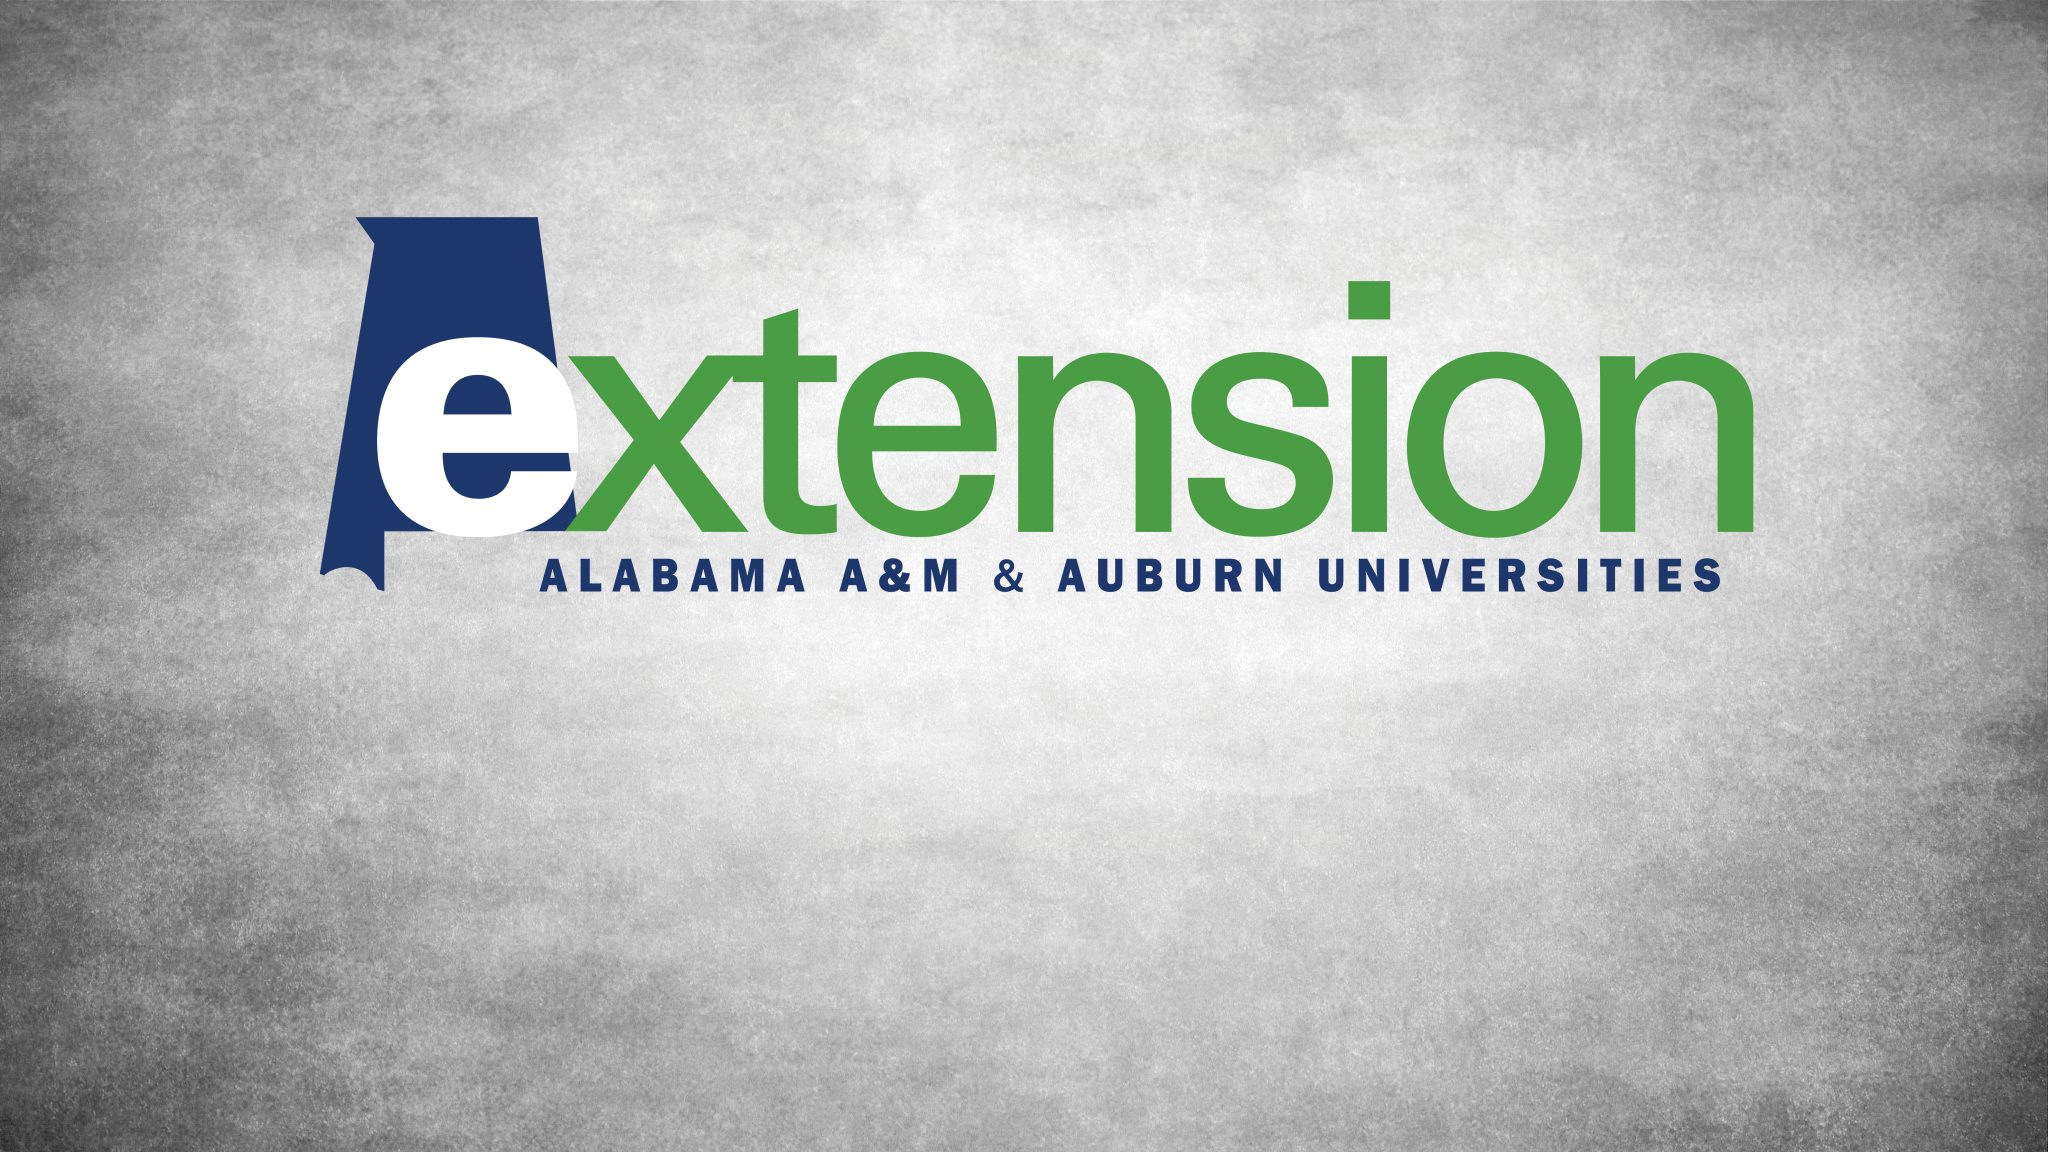 Extension logo on a gray background